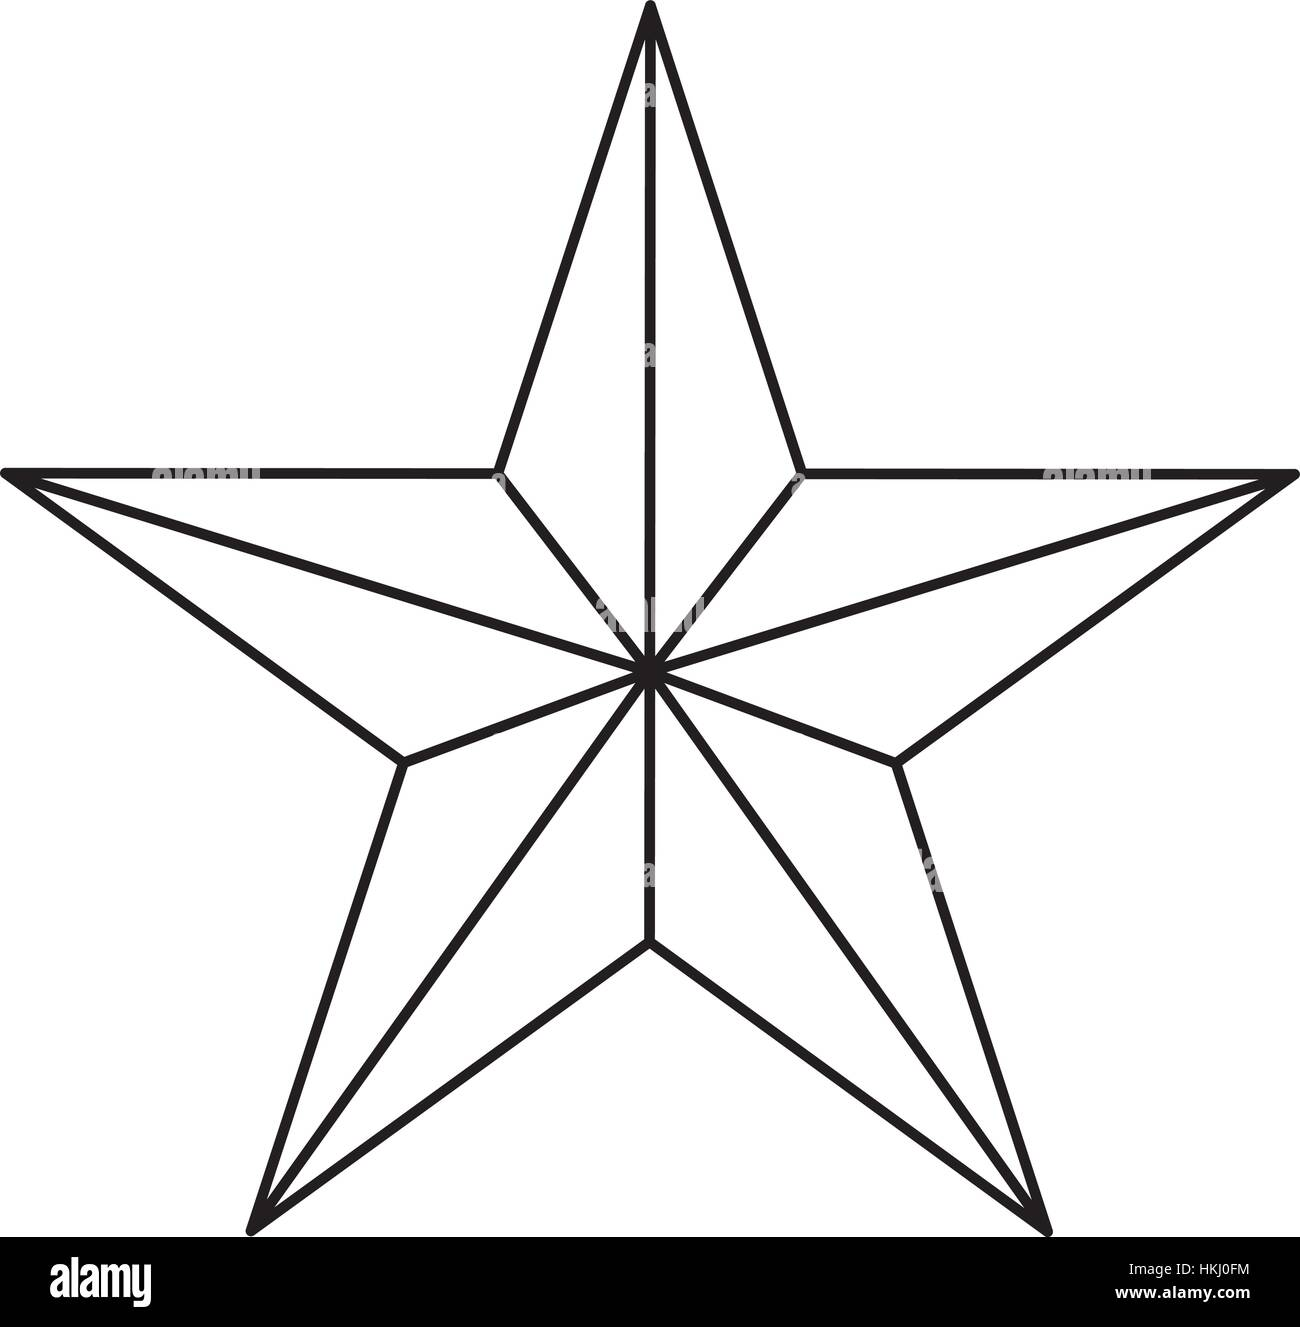 Star figure showing military authority icon image, vector illustration - Stock Vector